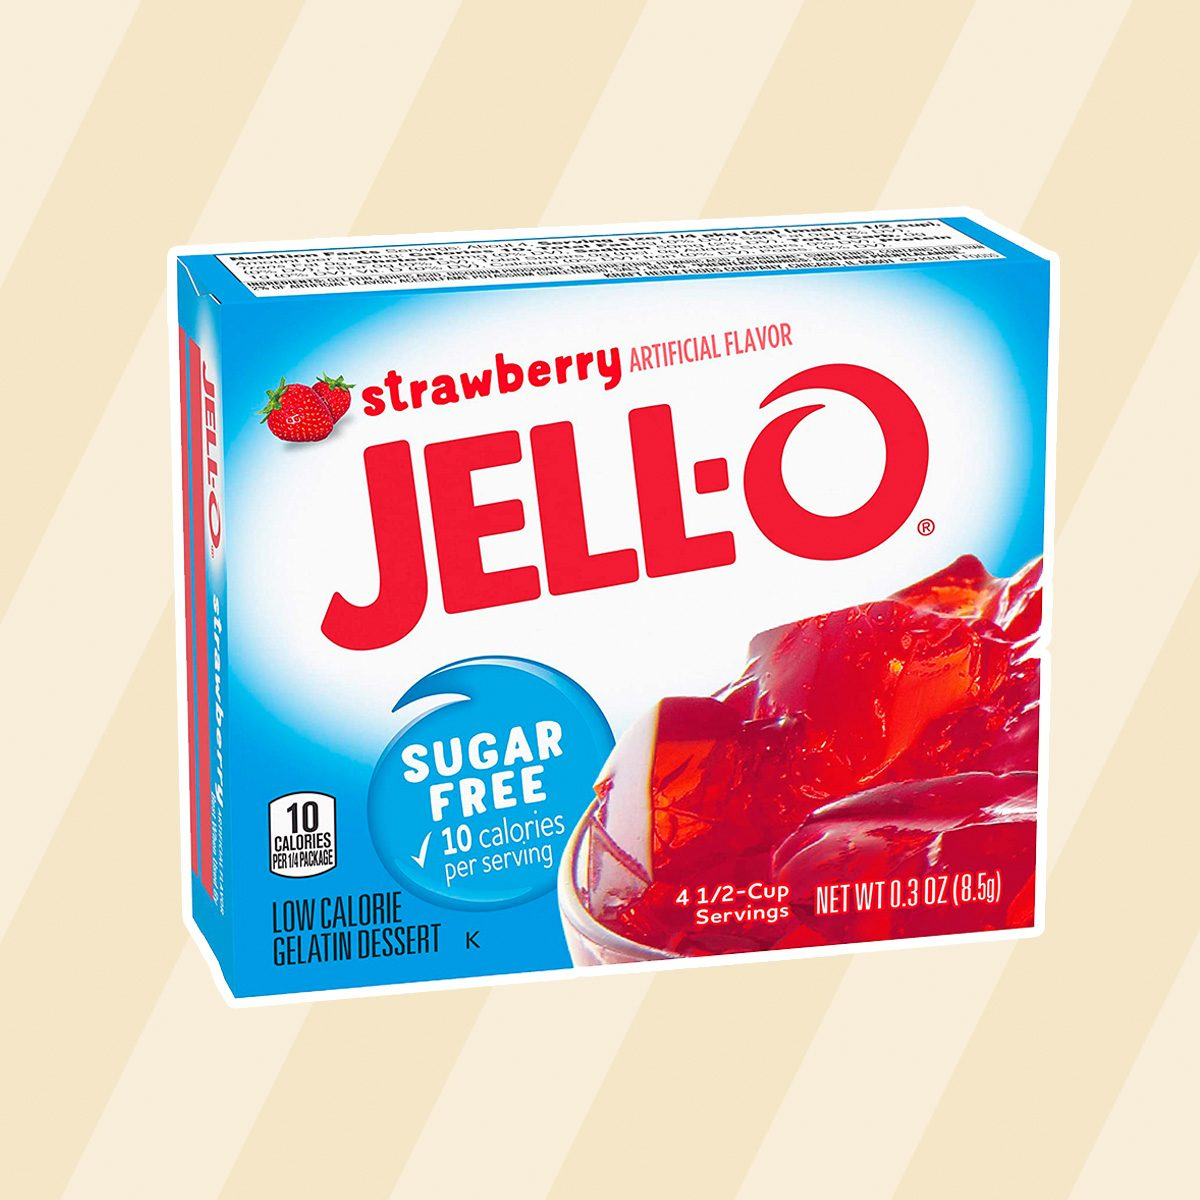 Jell-O Strawberry Sugar-Free Gelatin, 0.30 Ounce (8.5g), (Pack of 3)